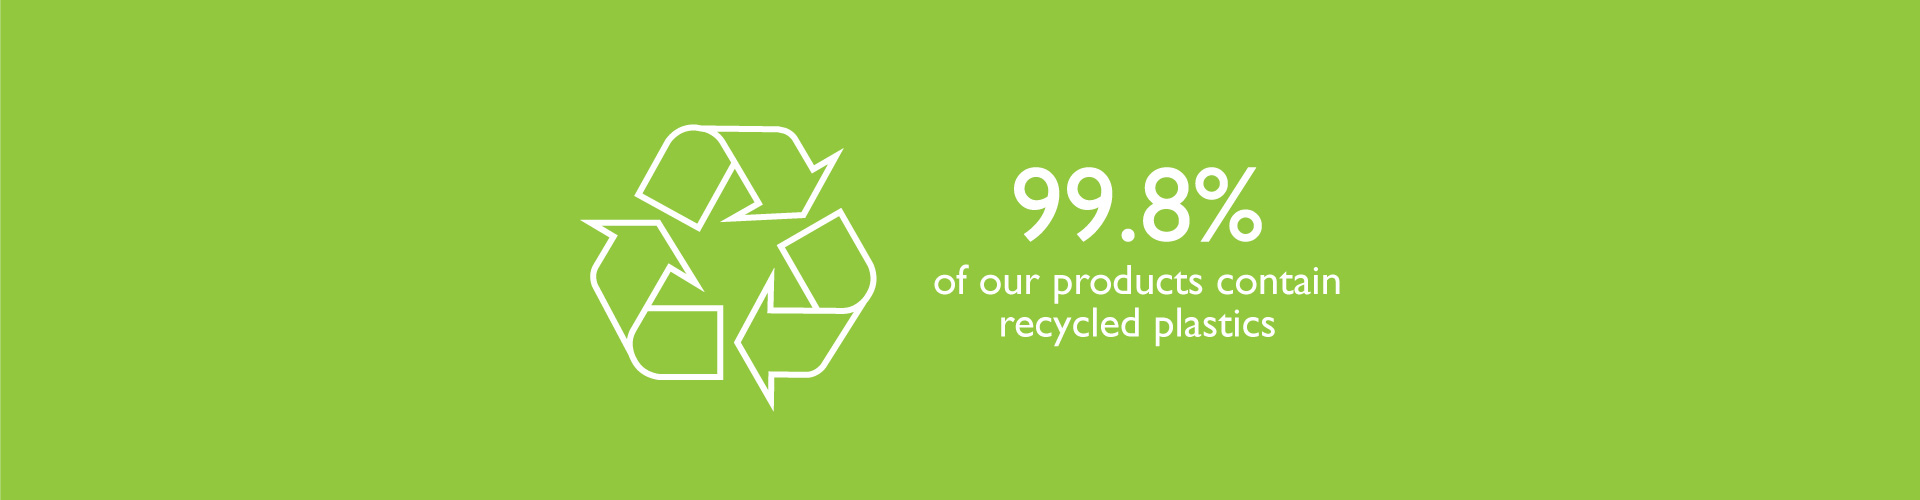 Sustainability-slider-99.8 recycled plastics